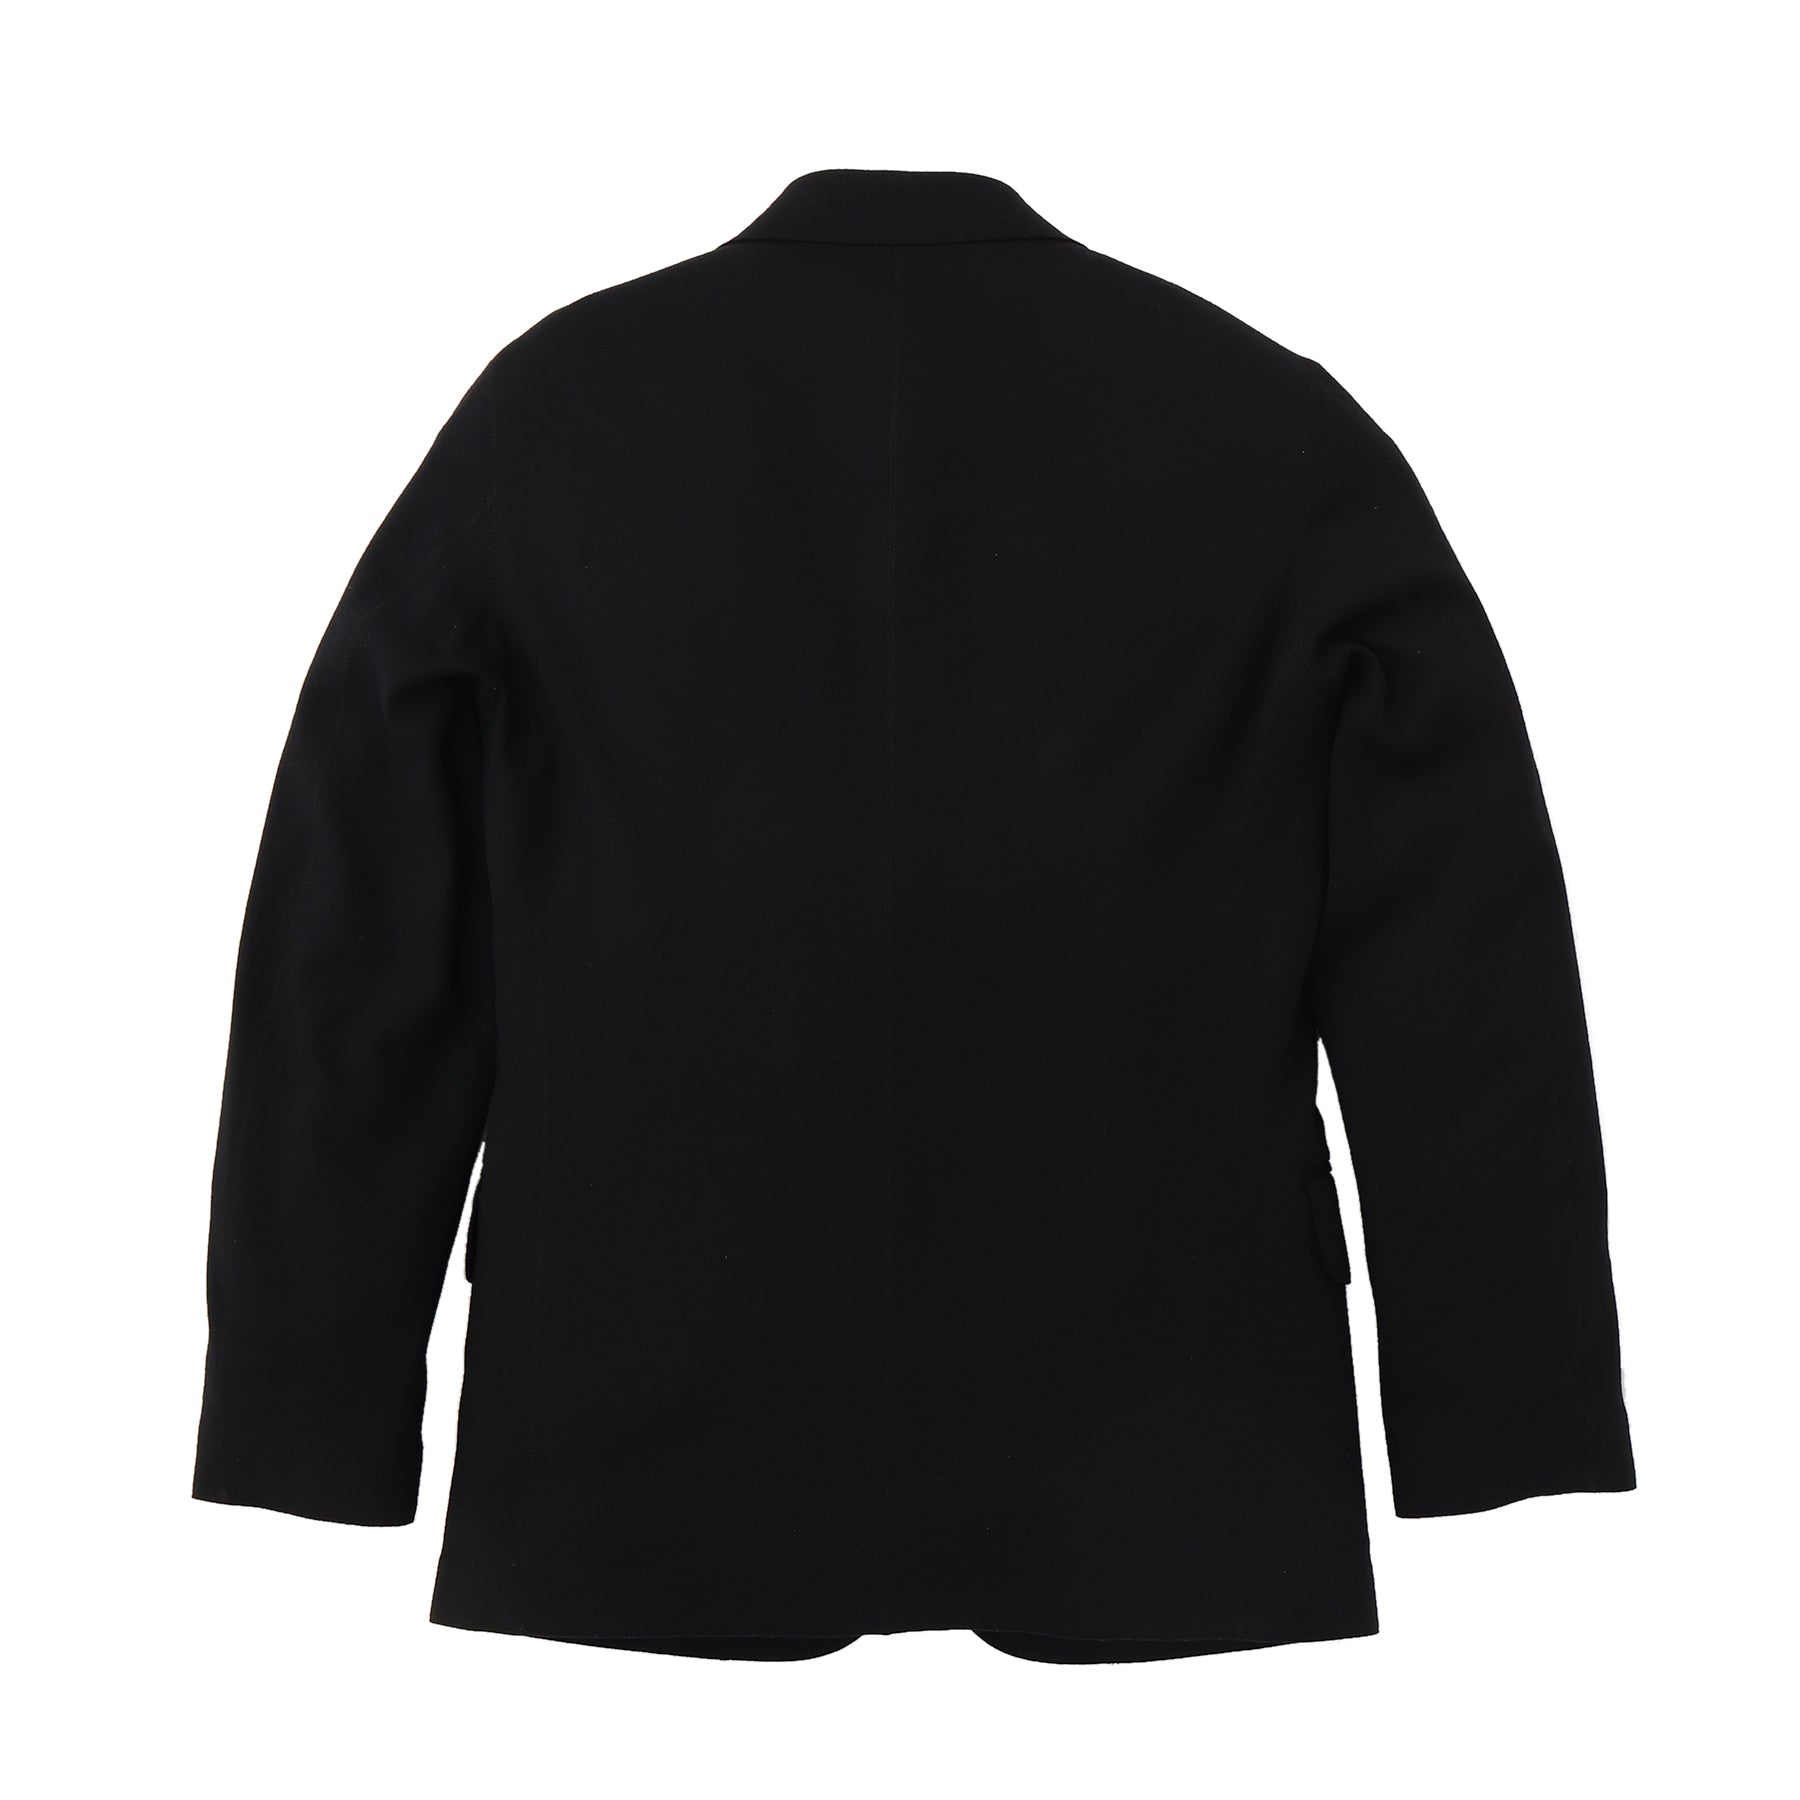 TPS_Middle Smooth Jacket<br>Col.Black